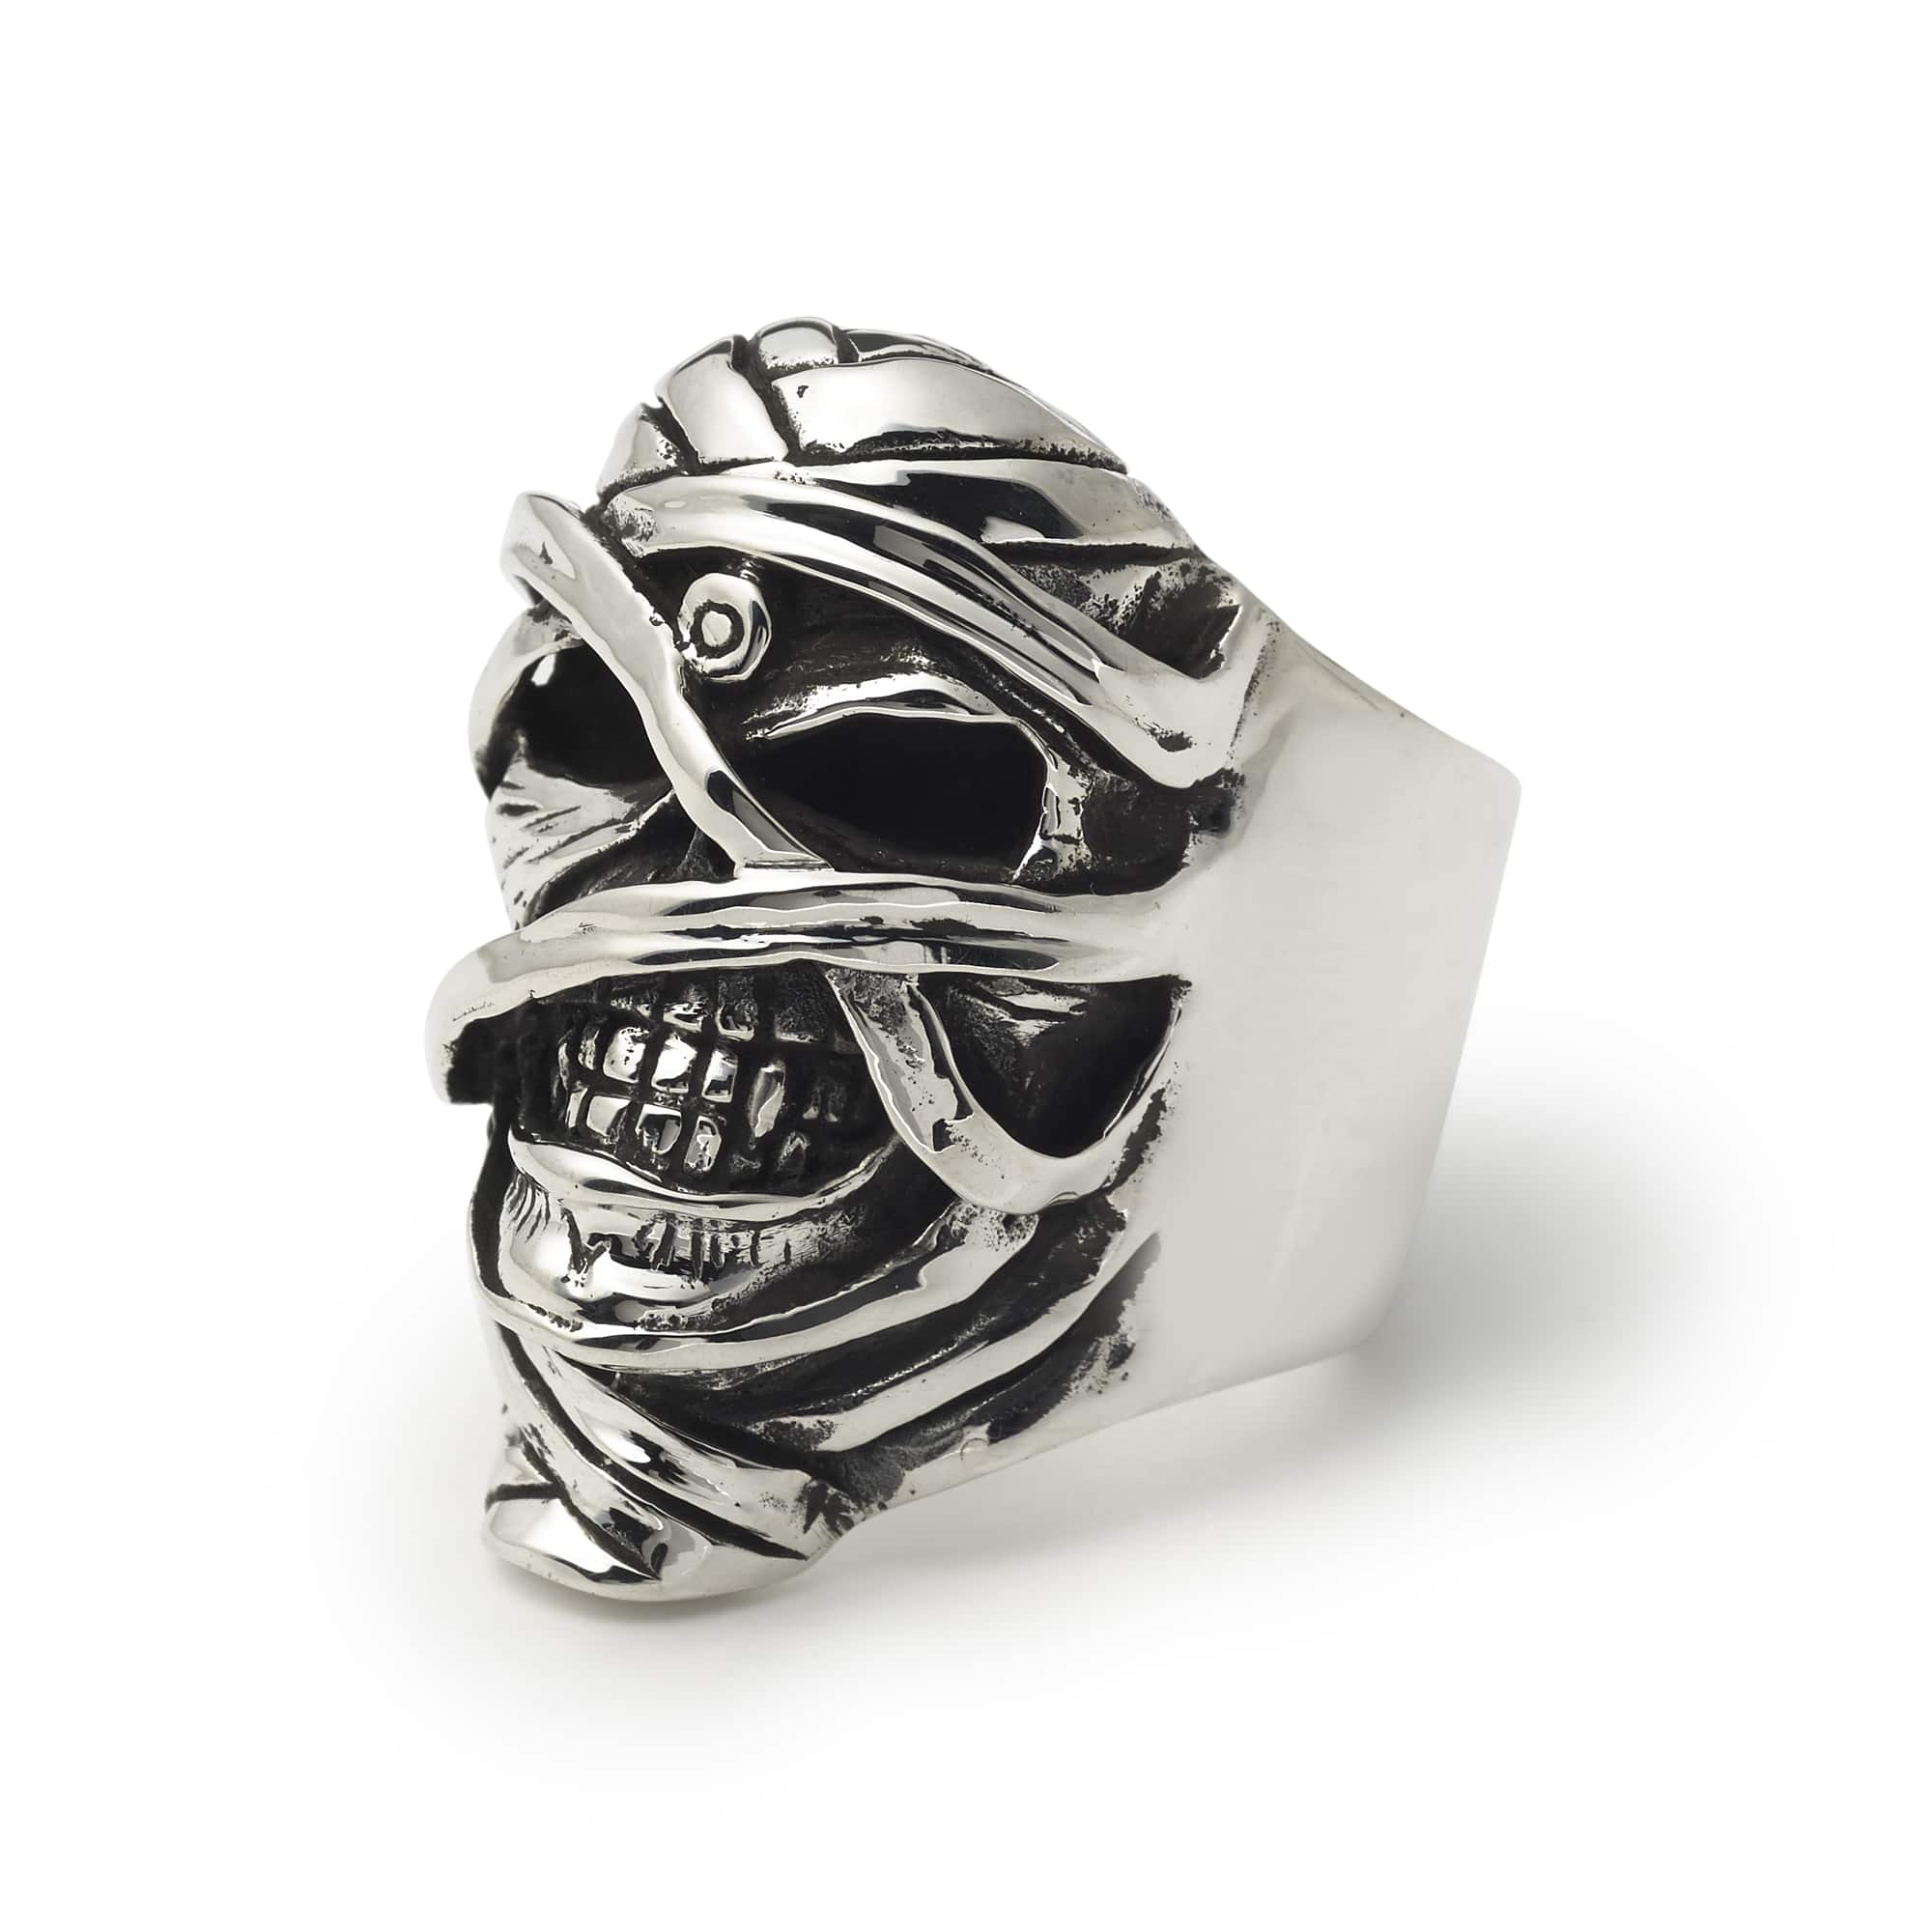 Iron Maiden \'Powerslave Eddie\' Ring – The Great Frog